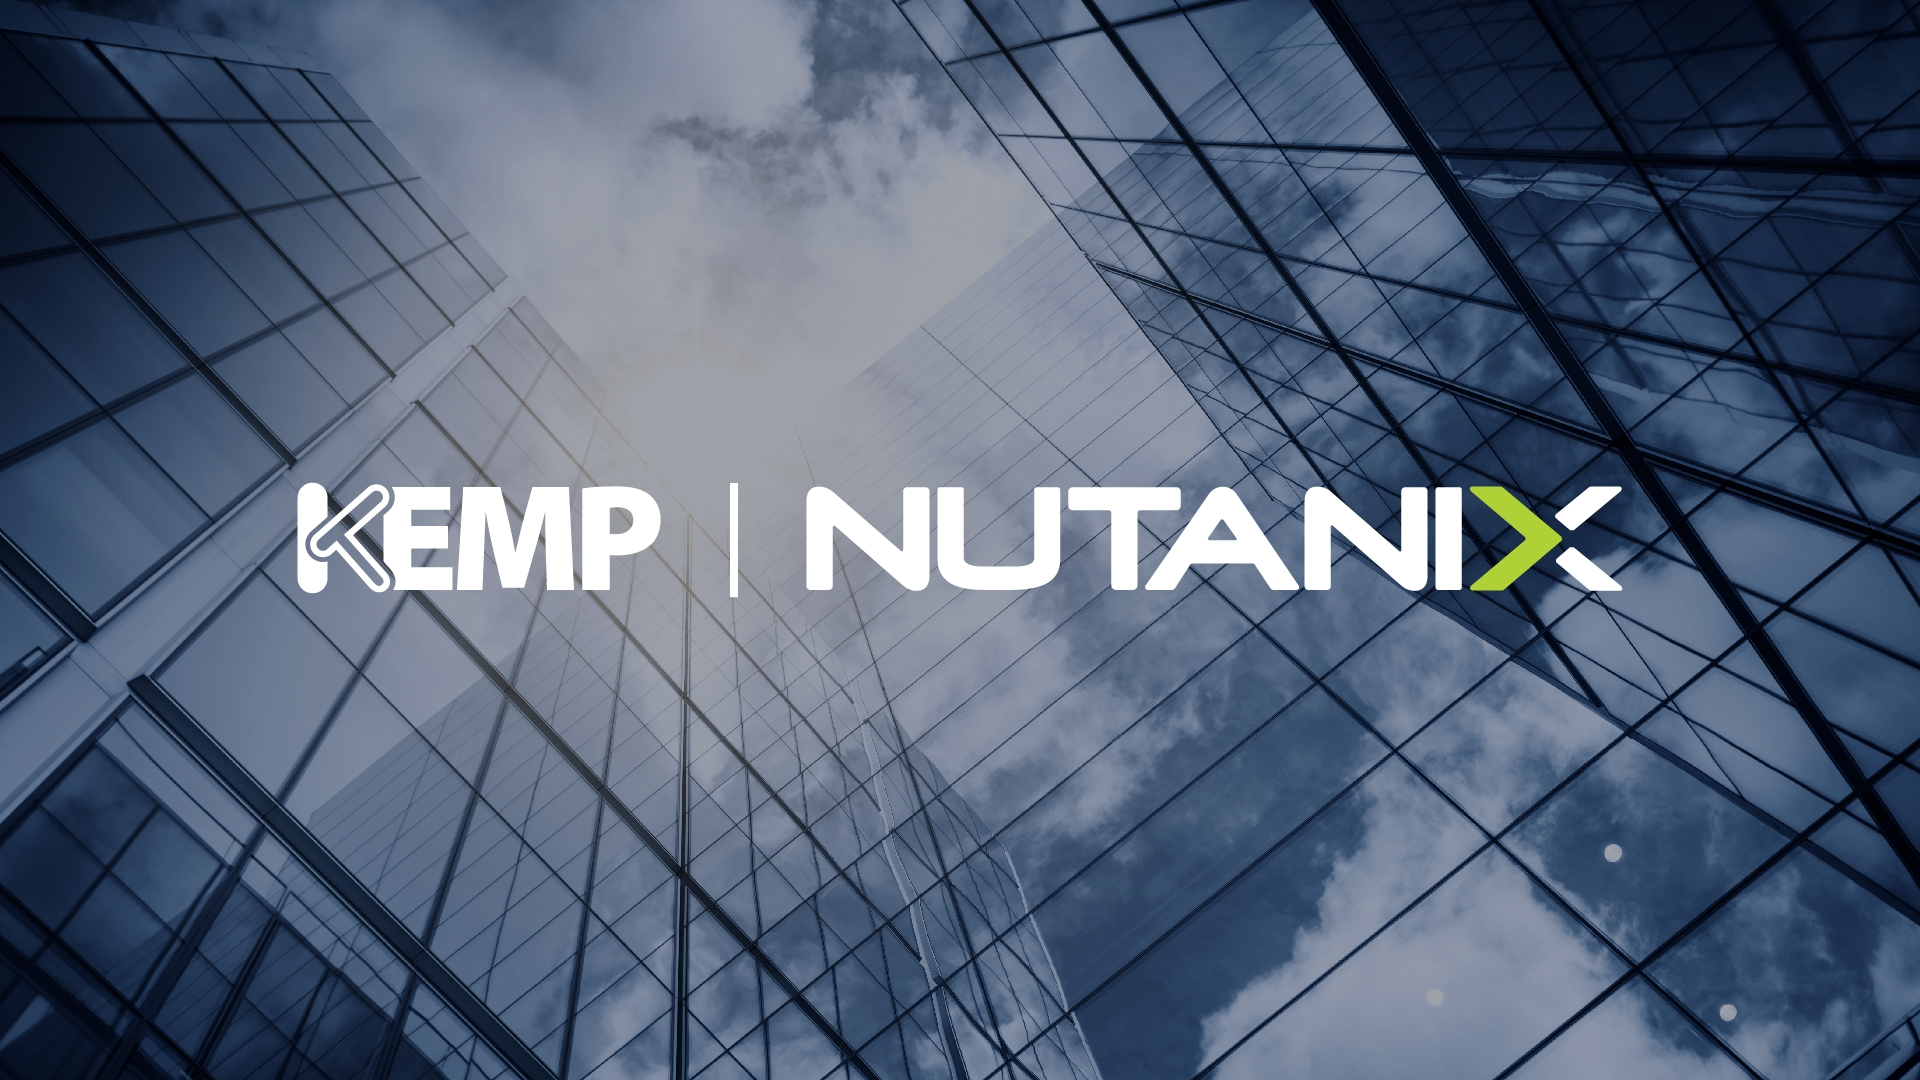 Nutanix and Kemp enable powerful multi-cloud architecture